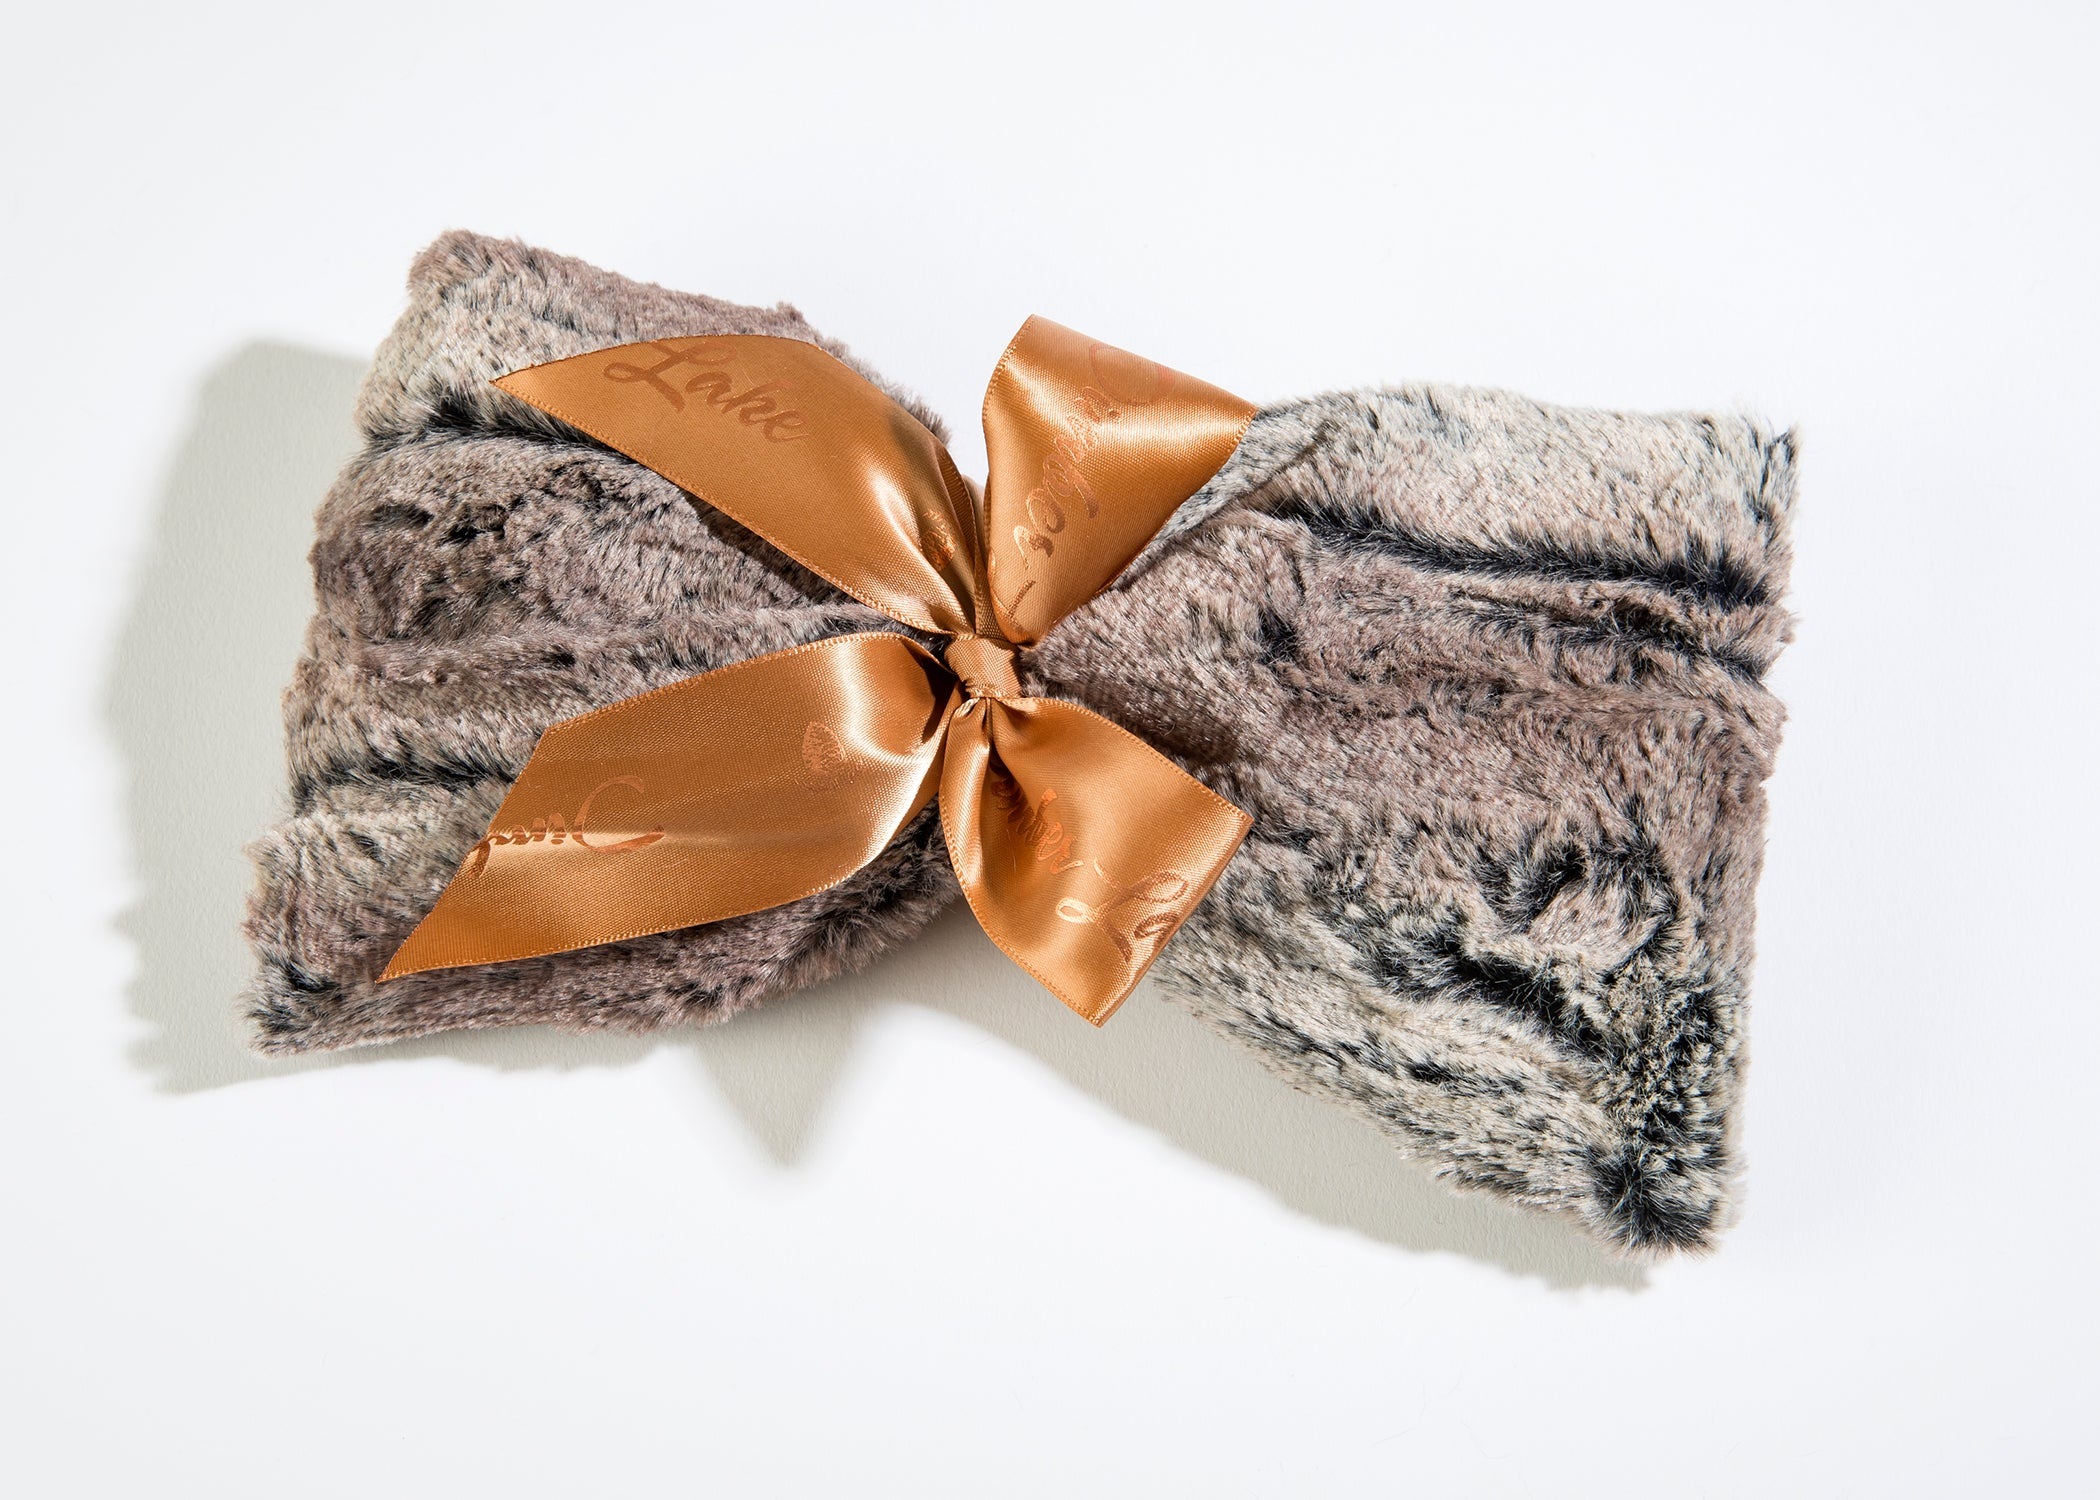 Timber Lake Spa Mask in Woodland Faux Fur